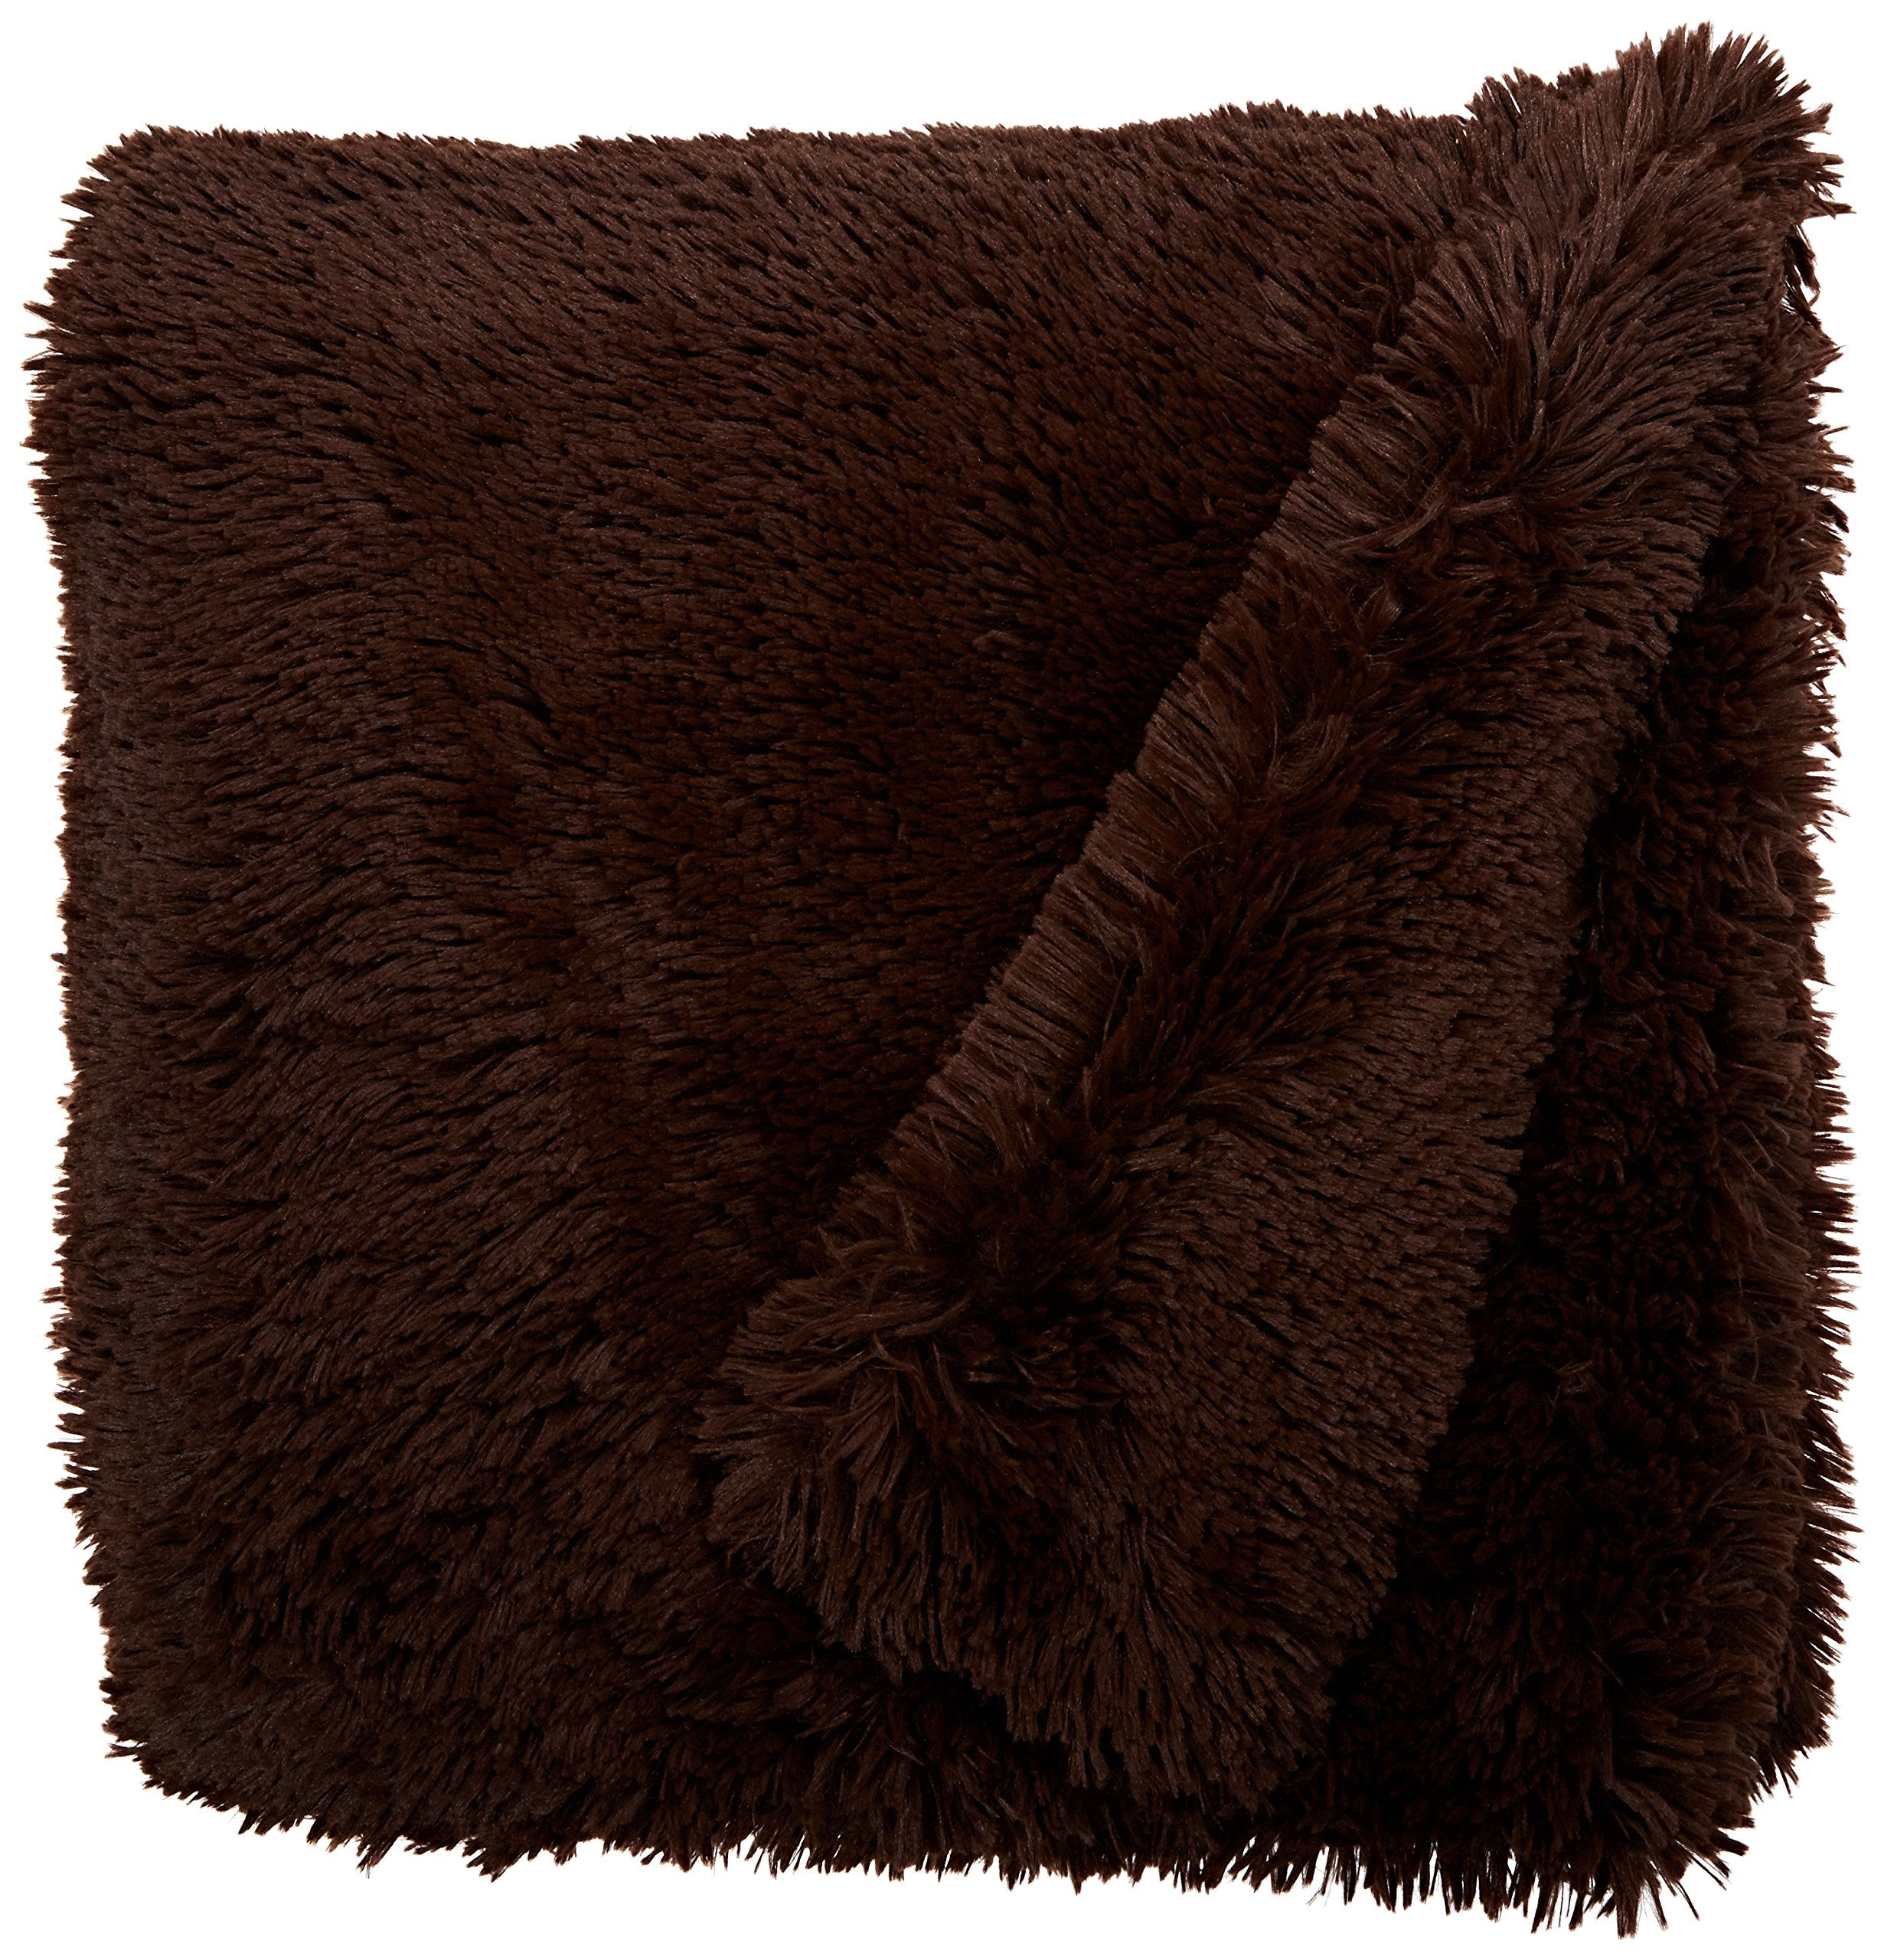 BESSIE AND BARNIE Pet Blanket, X-Large, Grizzly Bear/Grizzly Bear without Ruffle